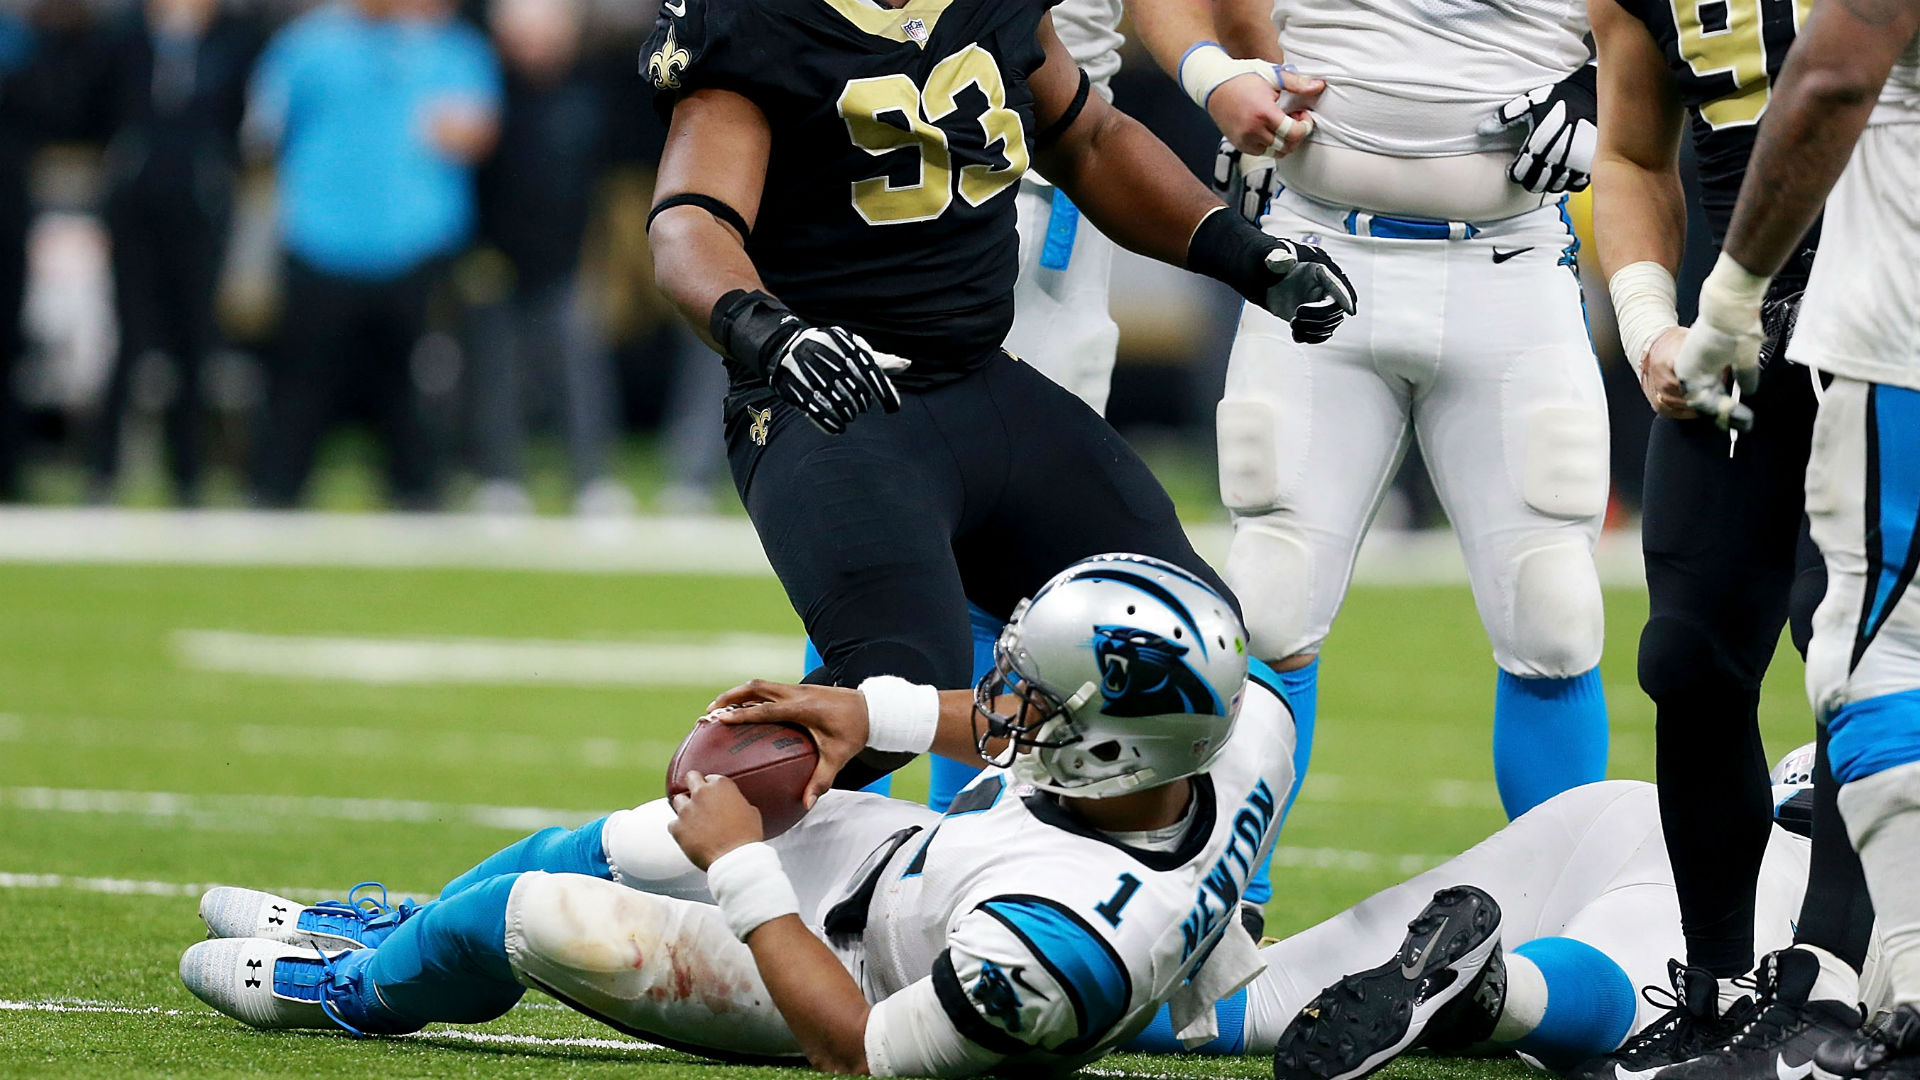 NFL, NFLPA to investigate Panthers' concussion evaluation of Cam Newton